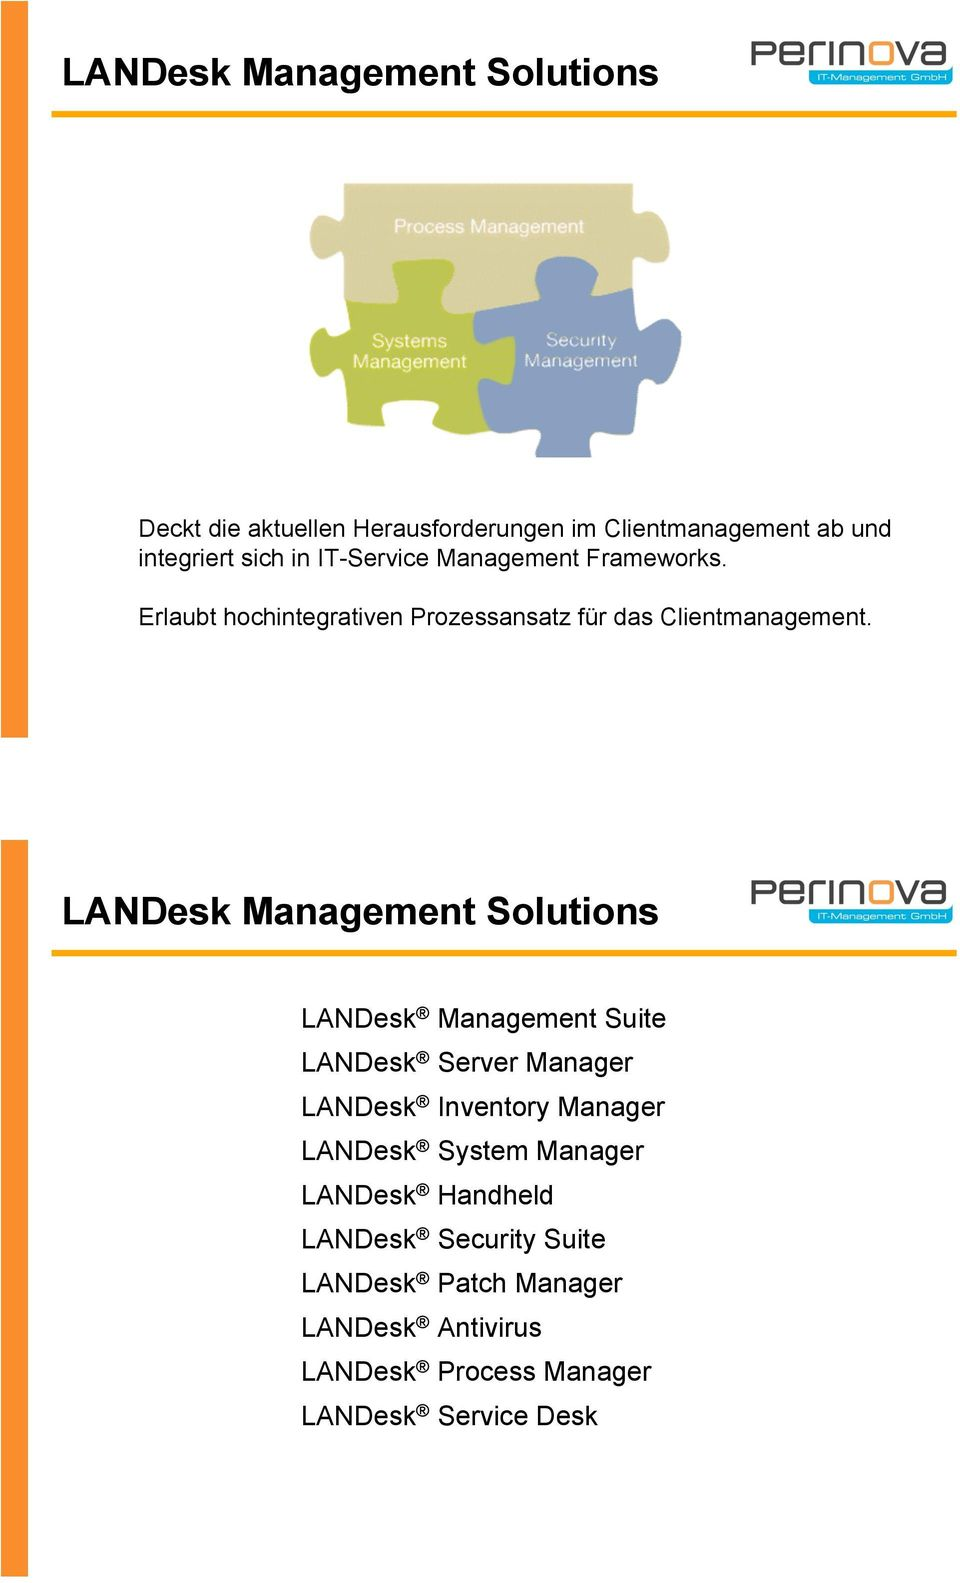 LANDesk Management Solutions LANDesk Management Suite LANDesk Server Manager LANDesk Inventory Manager LANDesk